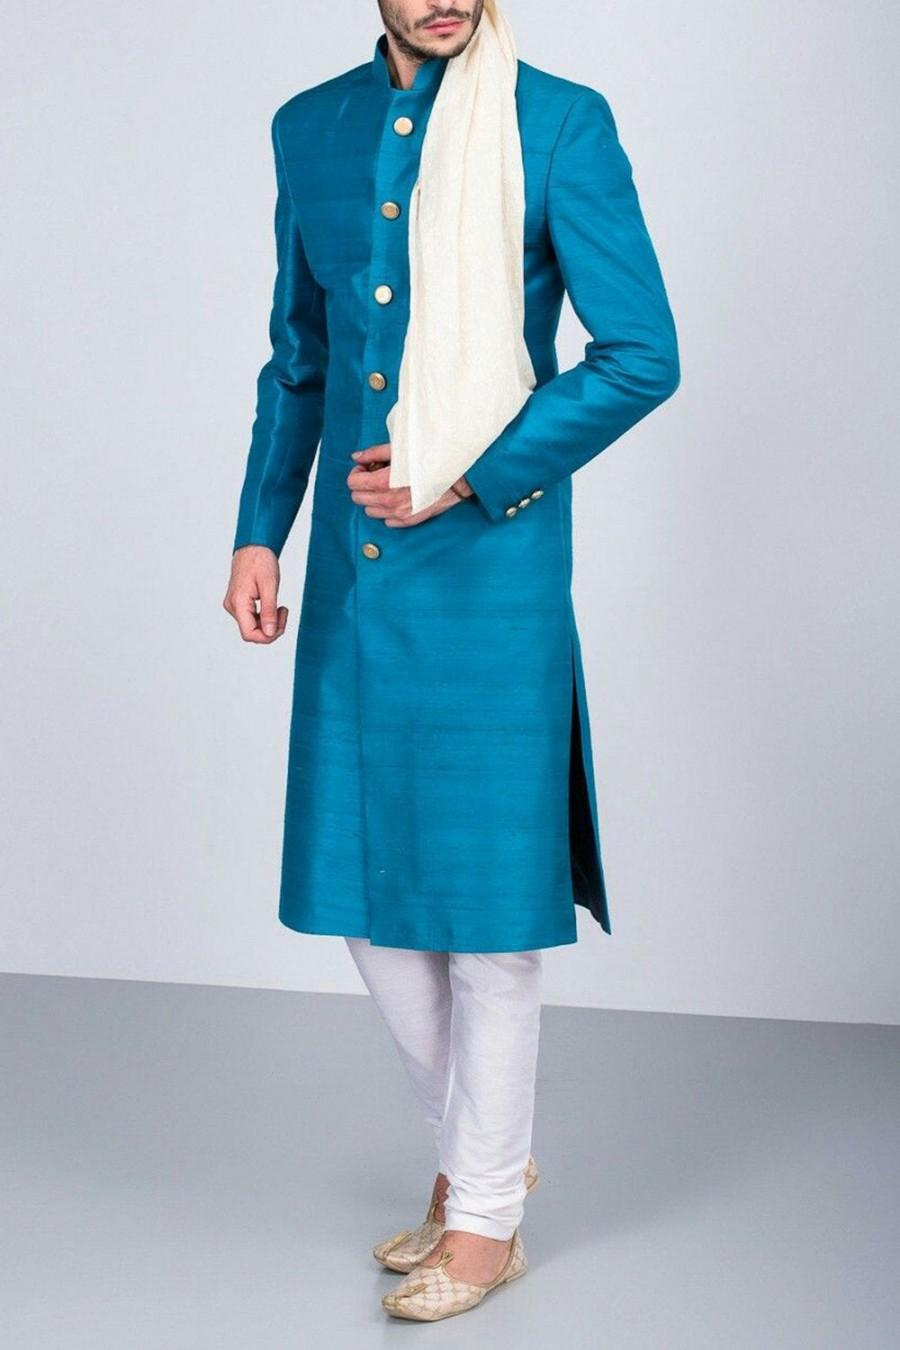 Hochzeit - Blue Wedding Jodhpuri suit Achkan Shewani for men / plus size available